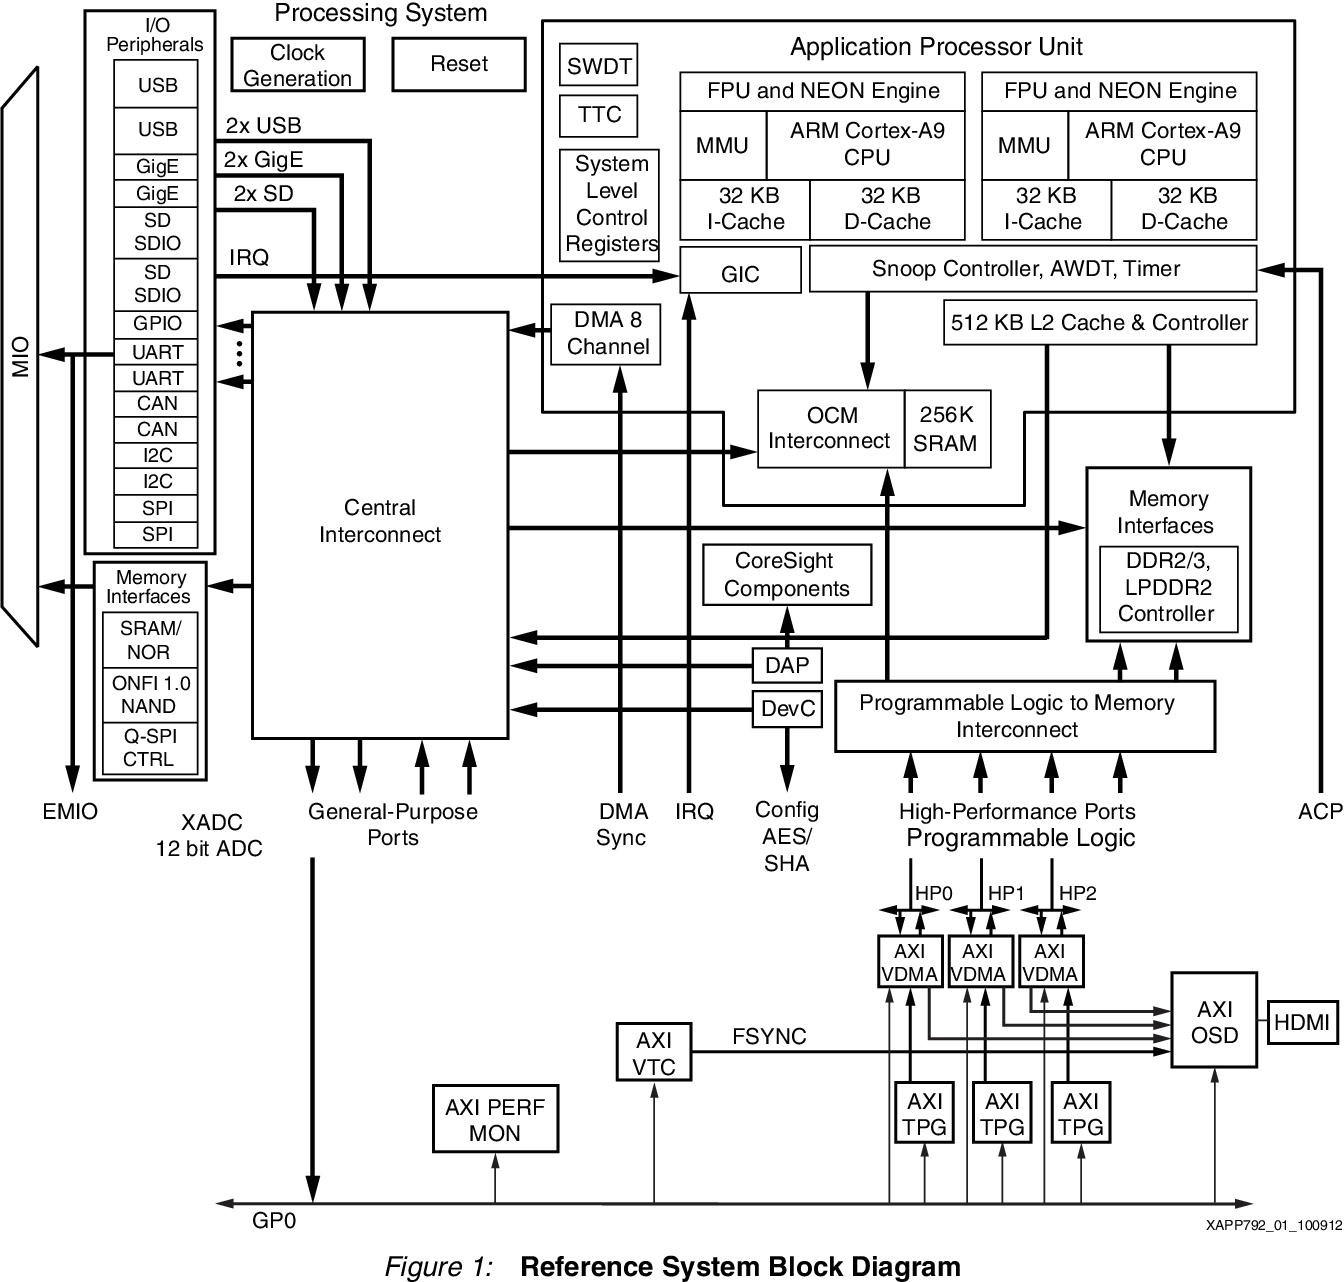 PDF] Designing High-Performance Video Systems with the Zynq